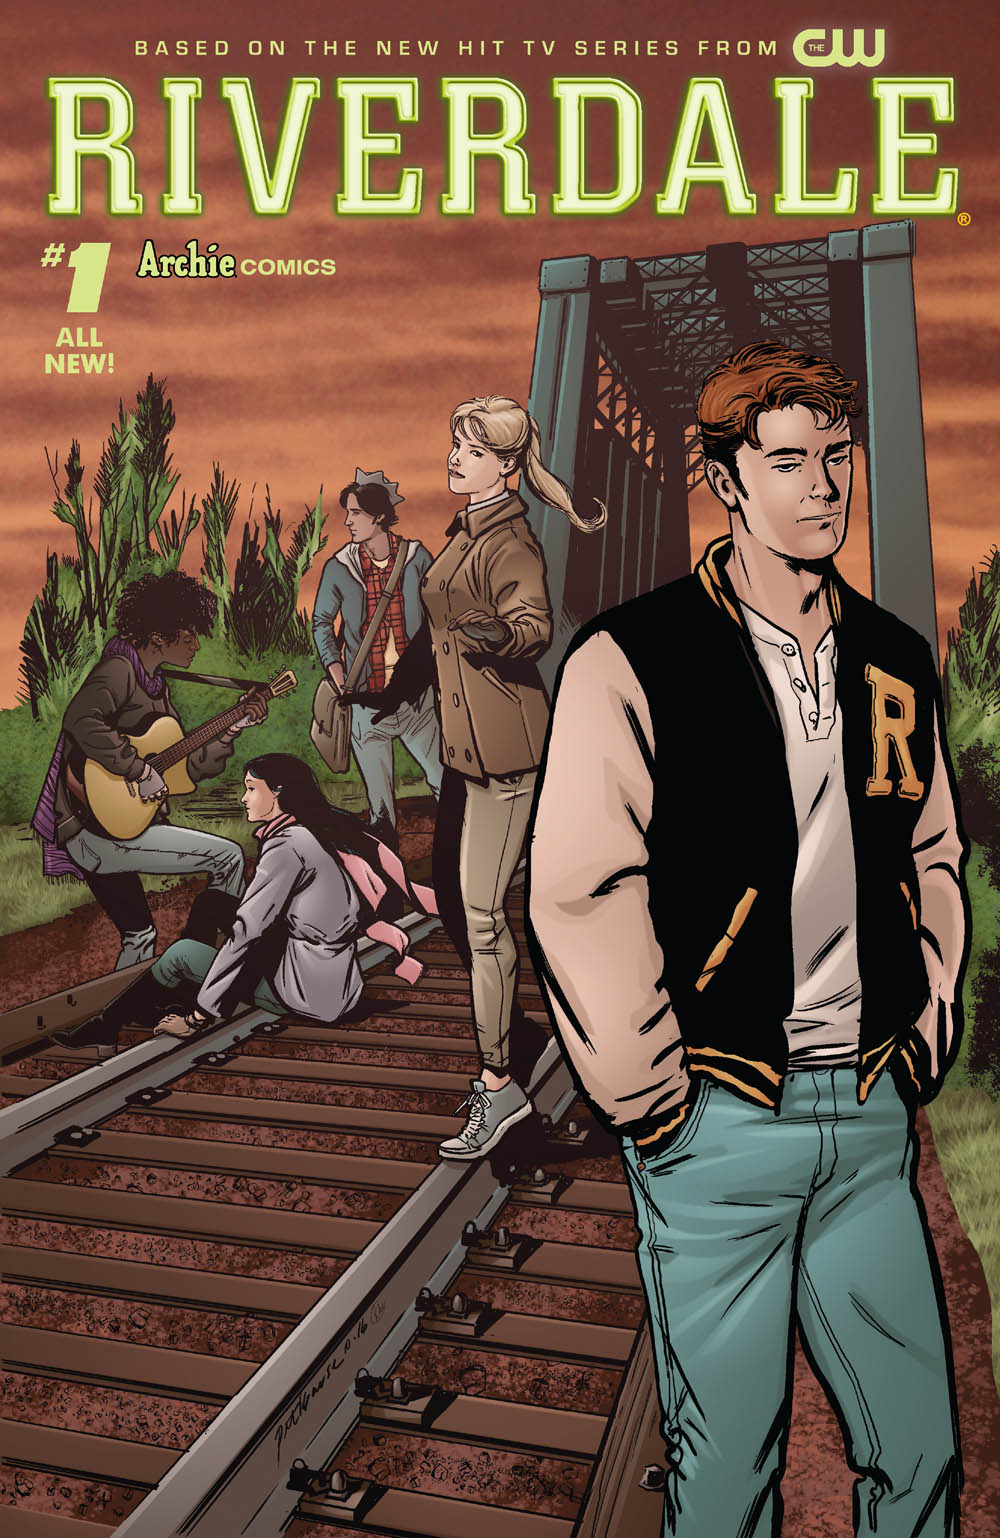 RIVERDALE 1 Preview First Comics News